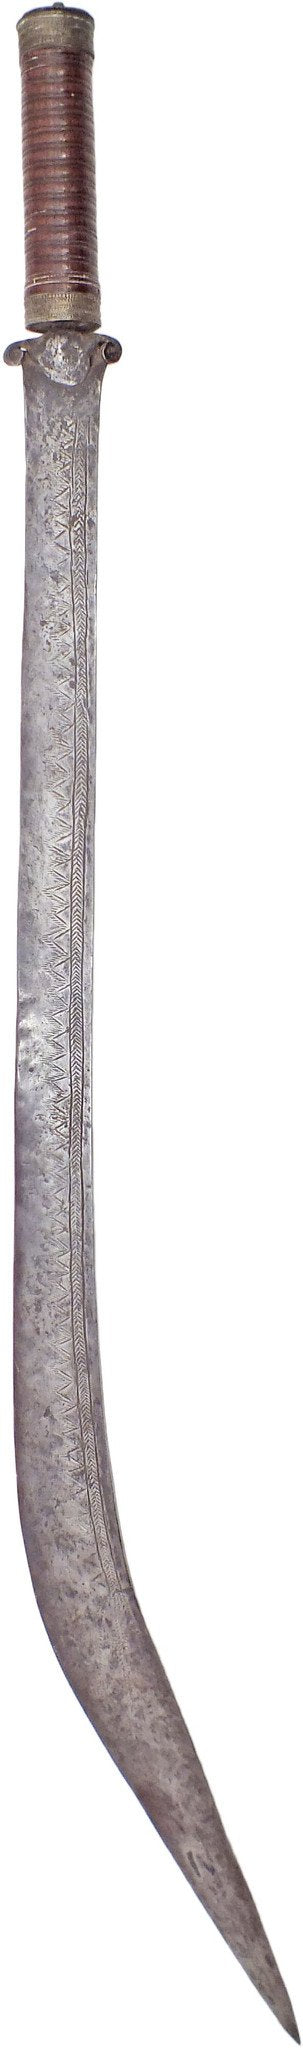 Massive Cambodian Executioners Sword - Product